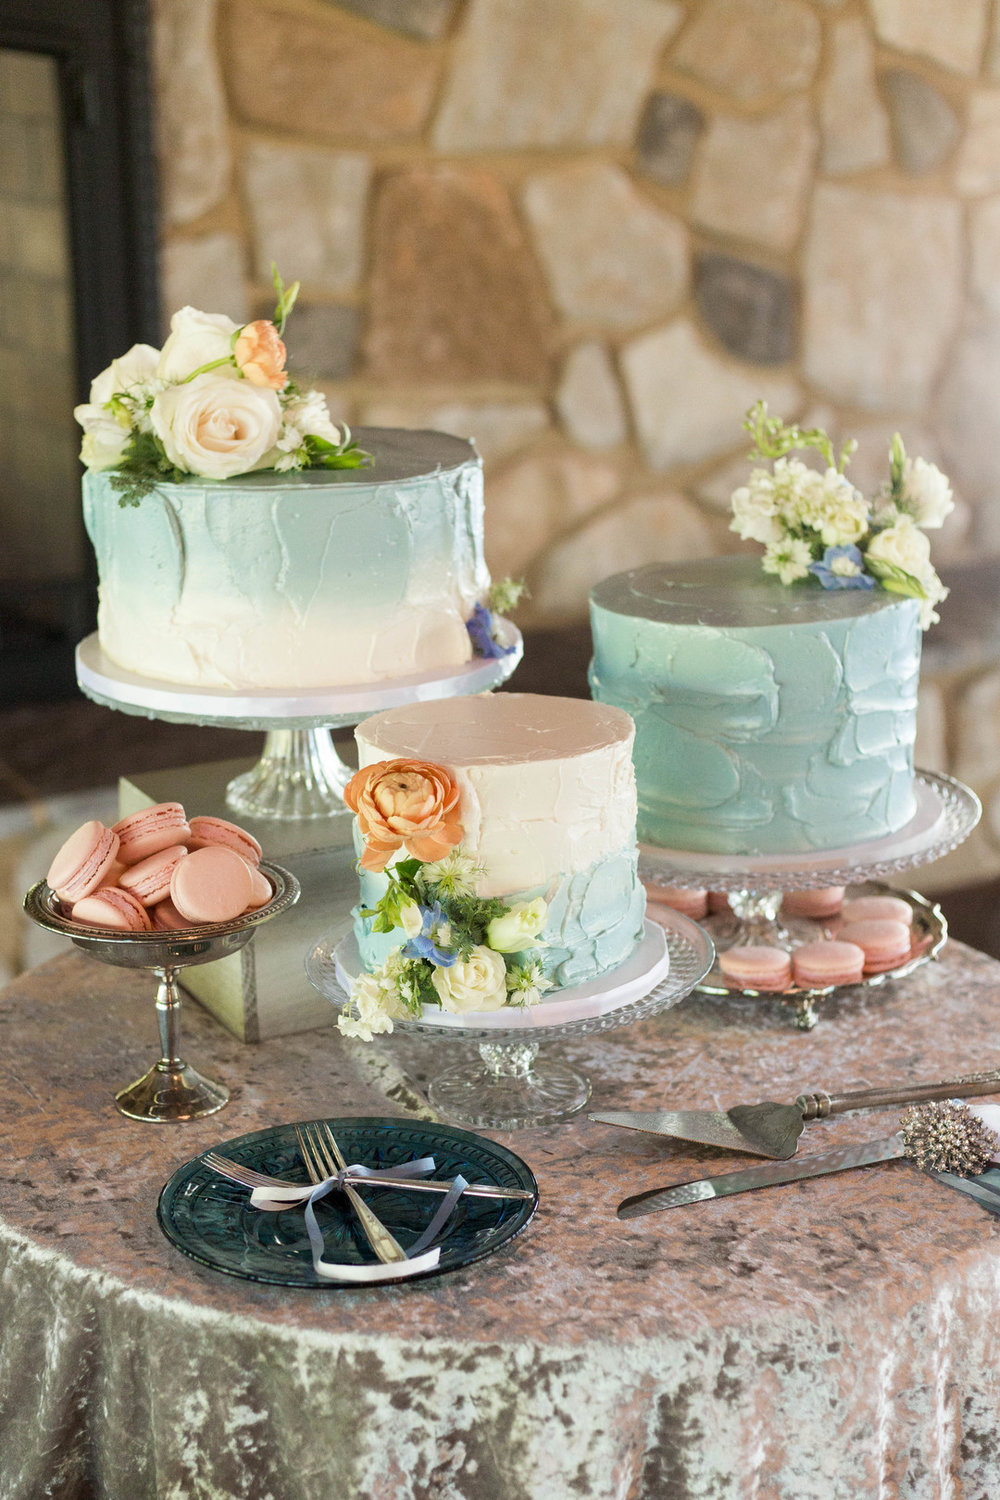 Three One Tier Baby Blue Marble Chicago Wedding Cake Hors d'oeuvres Chicago Wedding Reception Meghan McCarthy Photography